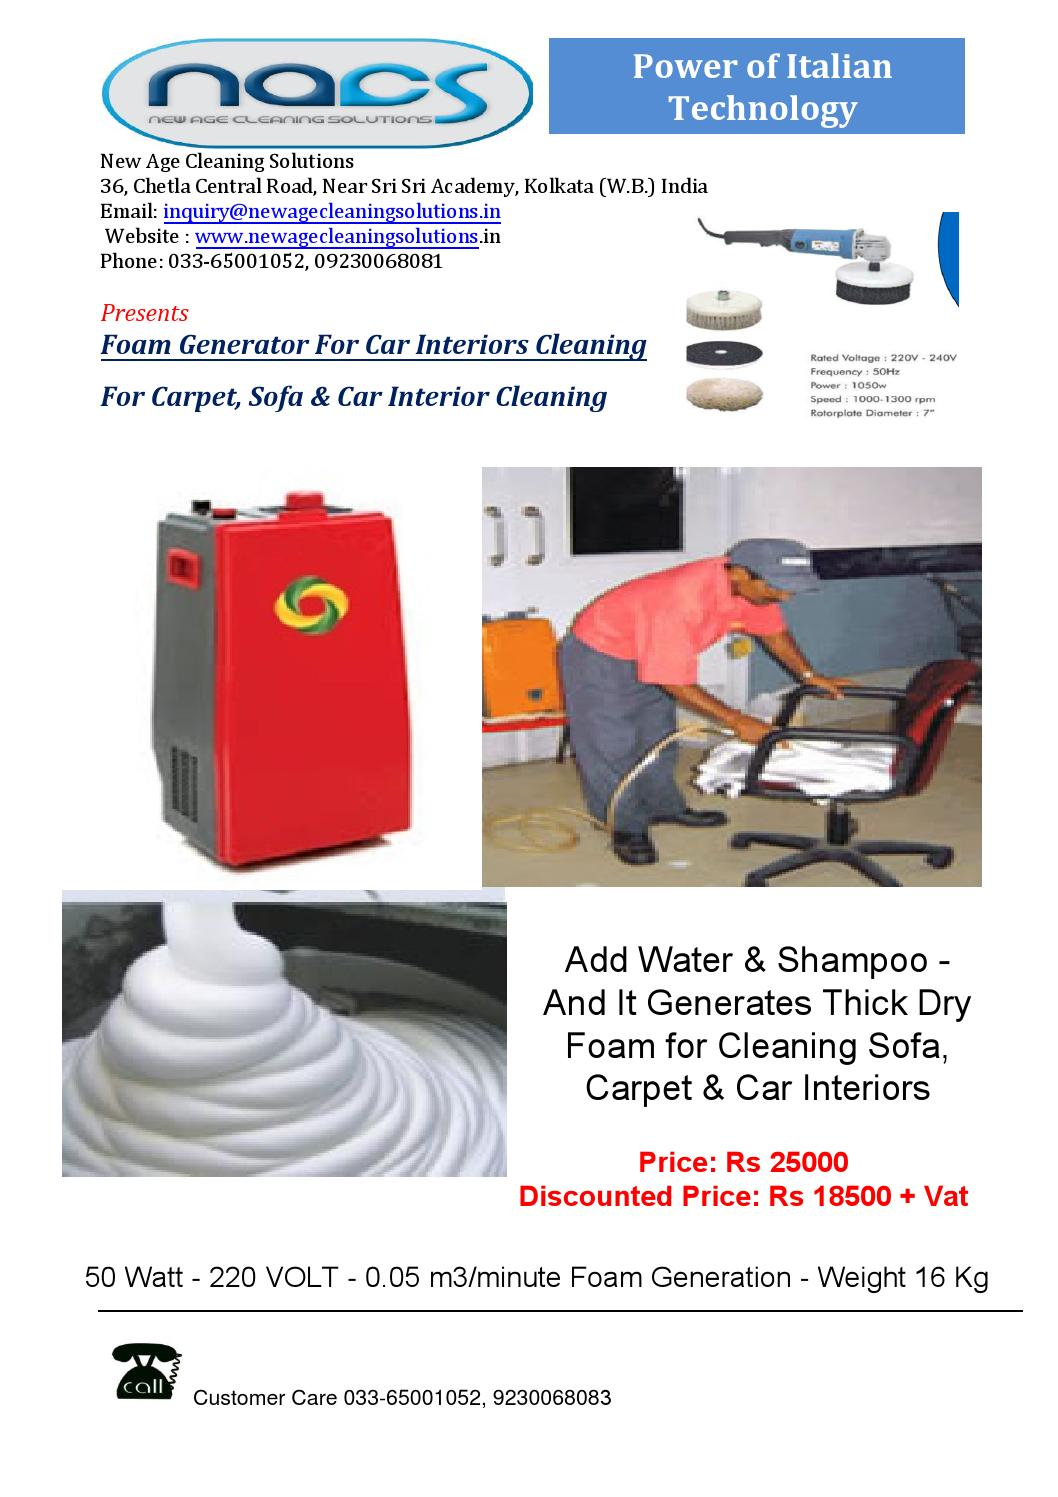 snow dry foam generator for car interior cleaning by new age cleaning solutions kolkata issuu. Black Bedroom Furniture Sets. Home Design Ideas